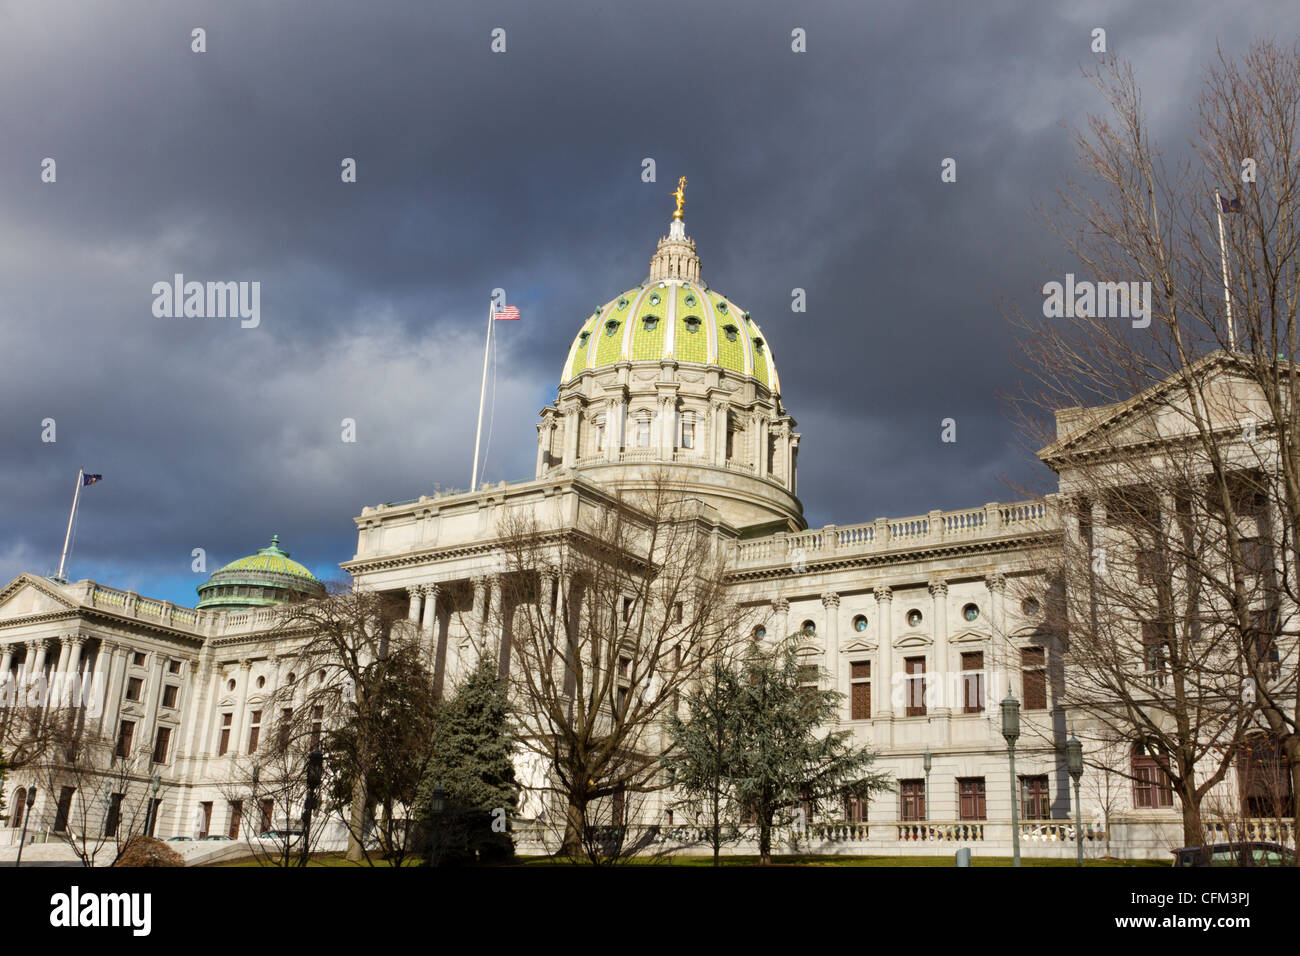 Pennsylvania state capitol building or statehouse in Harrisburg - Stock Image